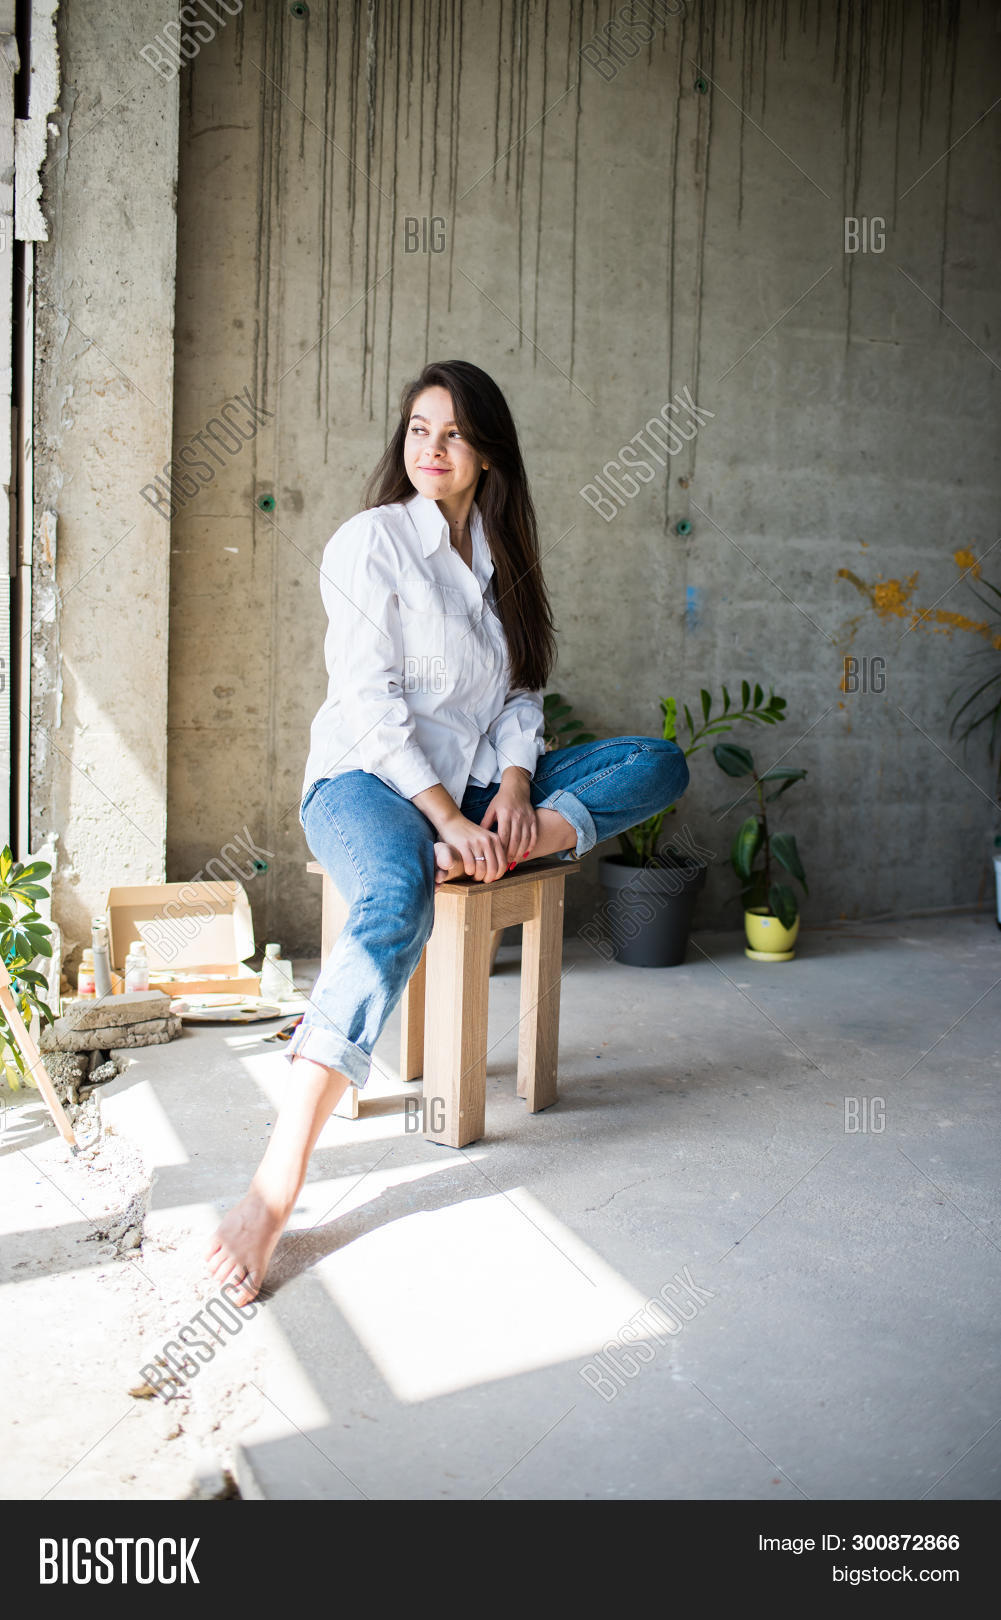 Beautiful Young Lady Artist In White Shirt Sitting Barefoot In Her Bohemian Artistic Studio Loft